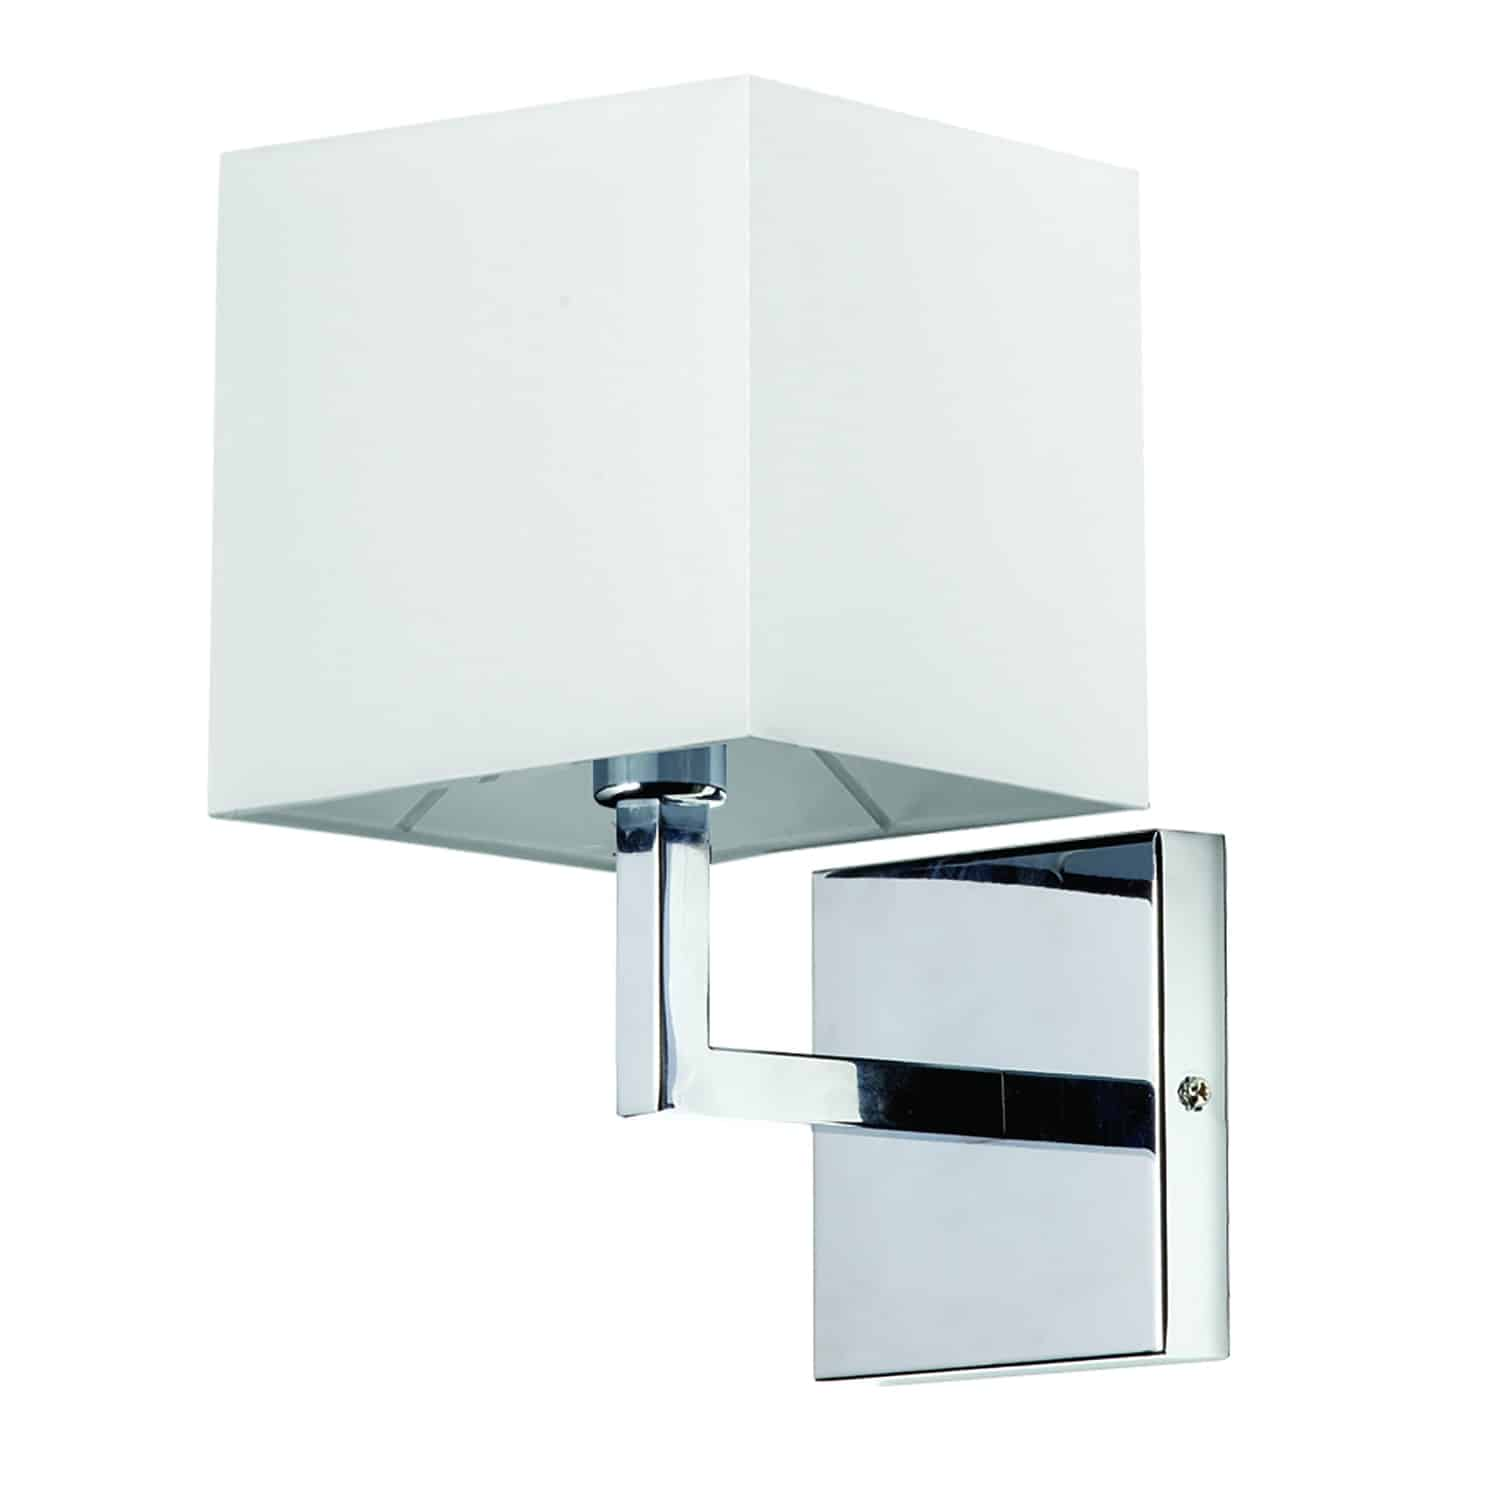 1 Light Incandescent Wall Sconce, Polished Chrome with White Shade Finish